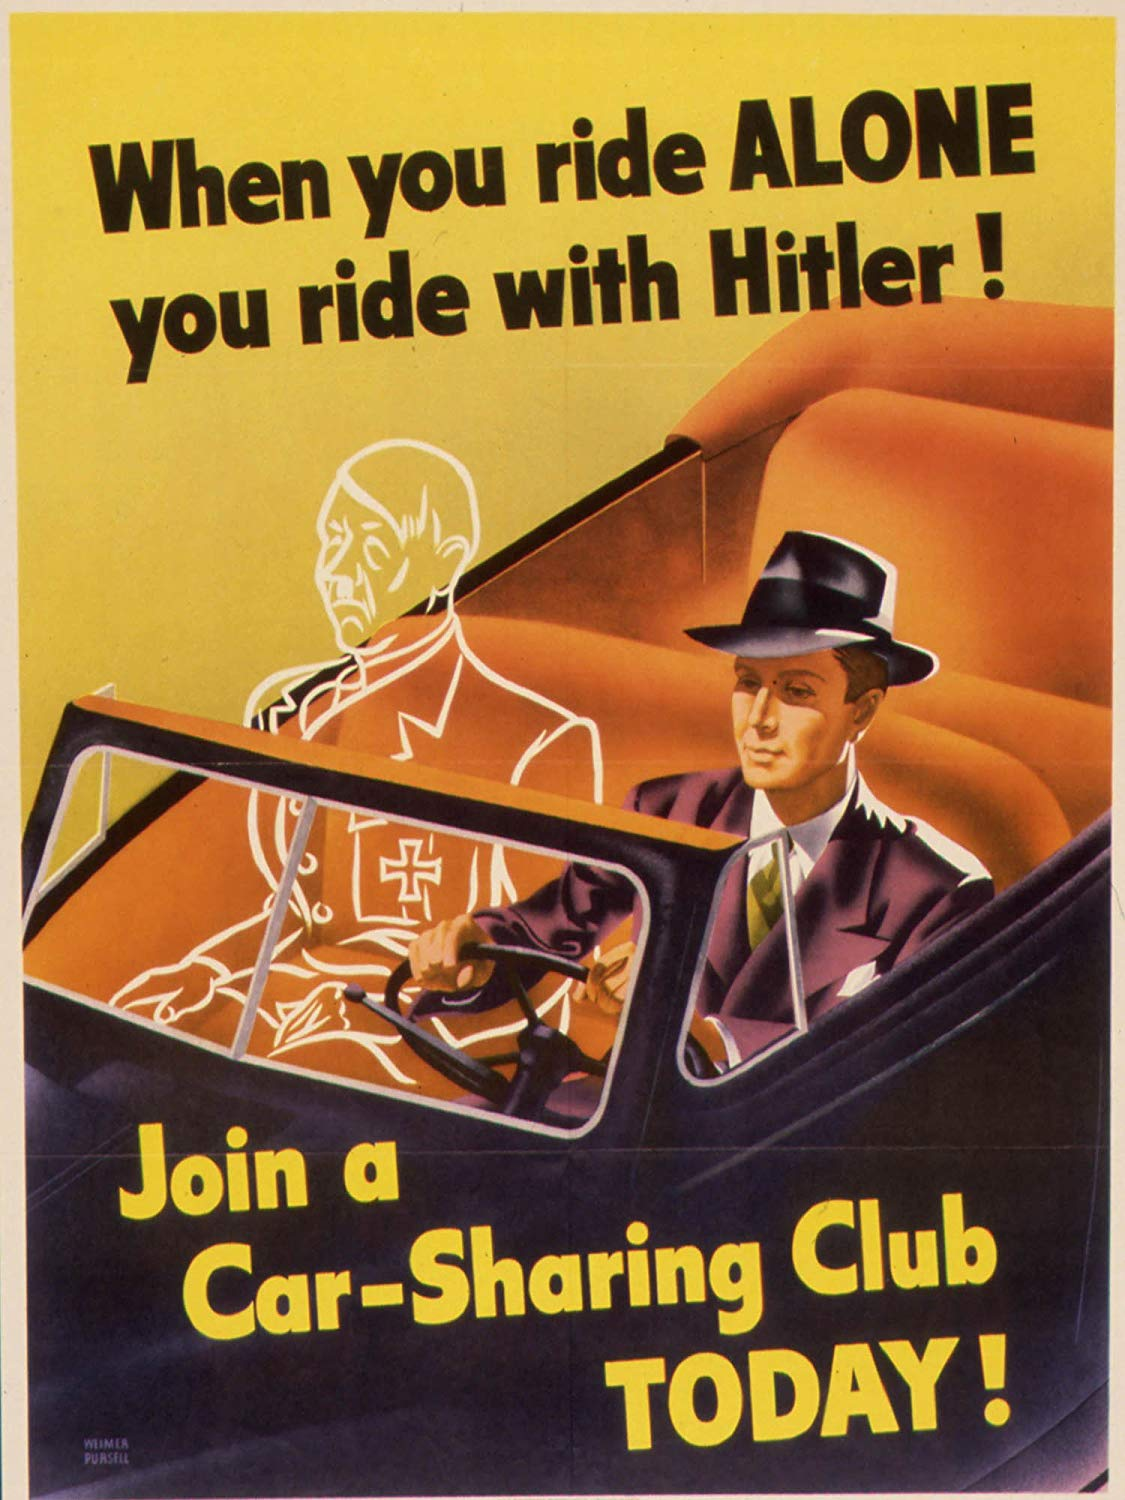 A Ride Alone is a Ride with Hitler